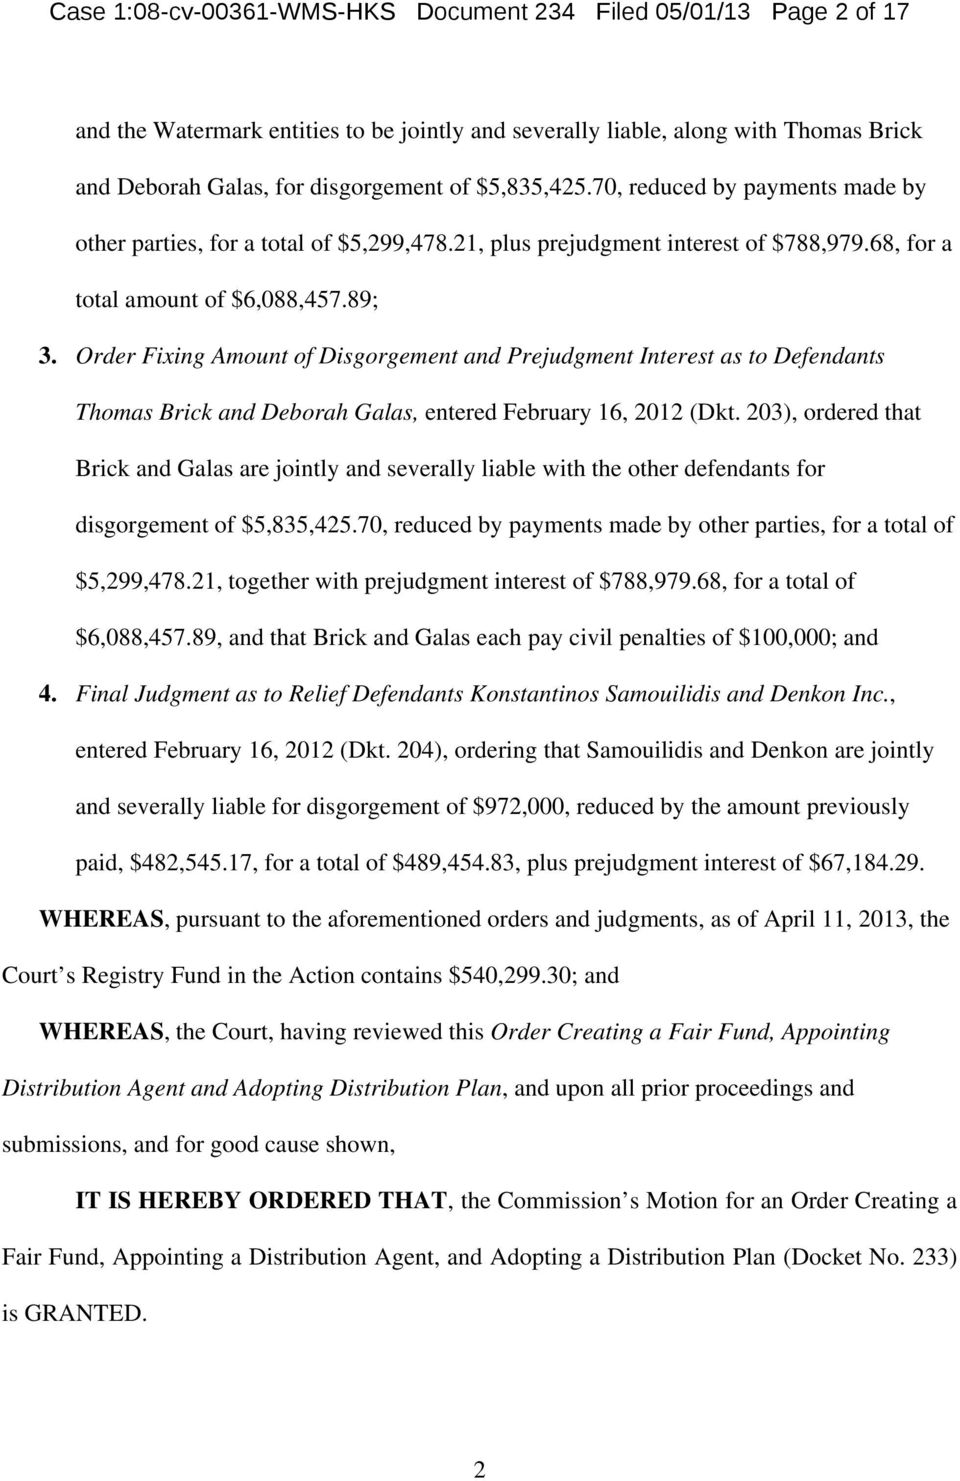 Order Fixing Amount of Disgorgement and Prejudgment Interest as to Defendants Thomas Brick and Deborah Galas, entered February 16, 2012 (Dkt.